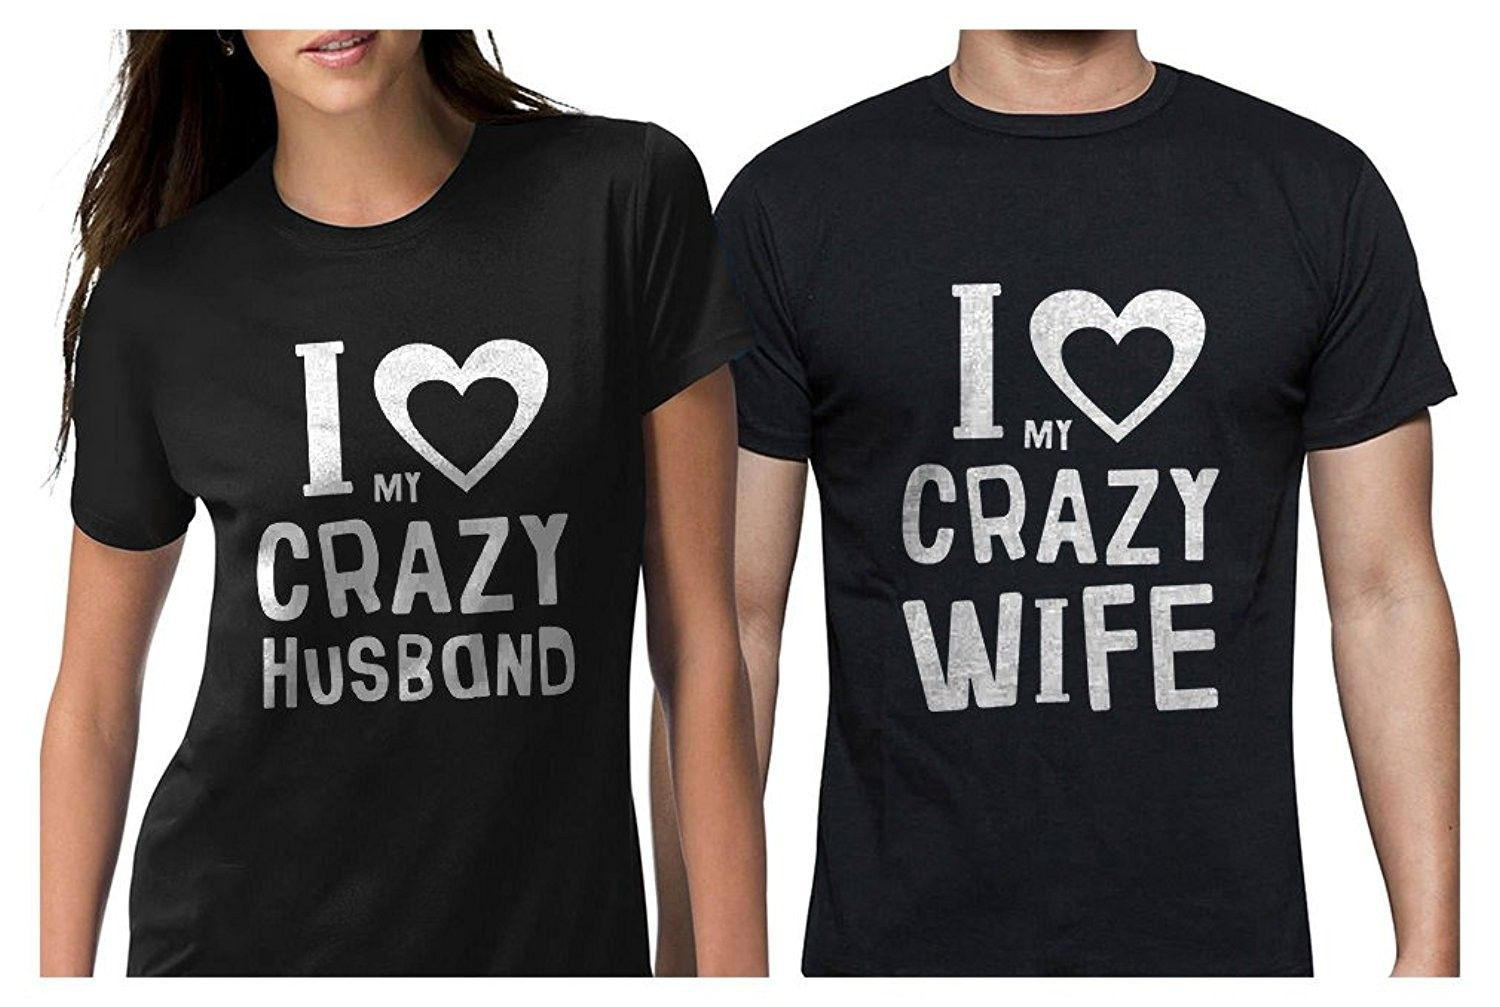 b2df3f55 Funny Husband & Wife Couples Gift Anniversary/Newlywed Matching Set T-Shirts  - Man Black / Woman Black - CX189SROL37,Men's Clothing, T-Shirts & Tanks,  ...